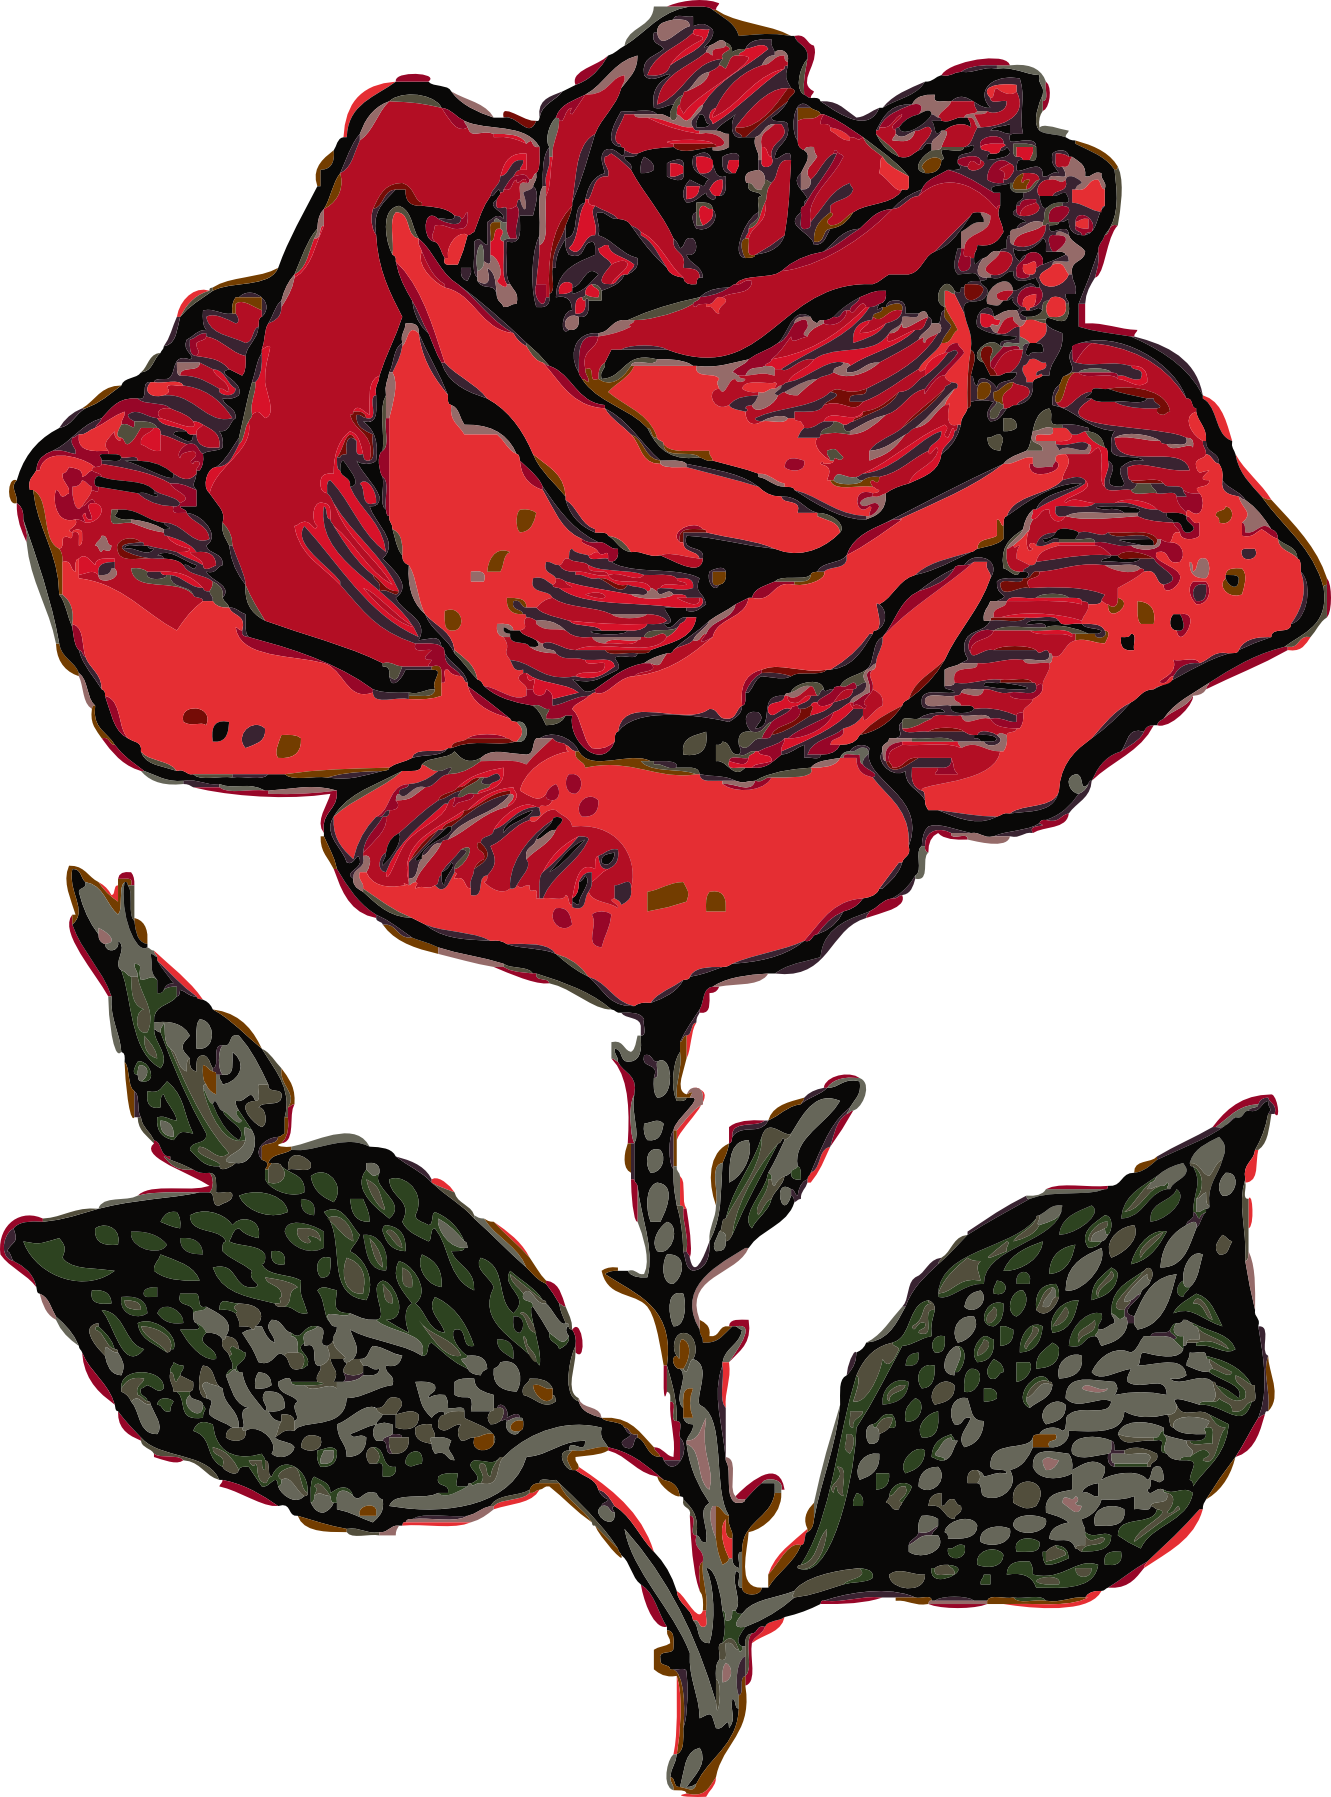 Rose art clipart image black and white download Rose clip art free clipart images – Gclipart.com image black and white download